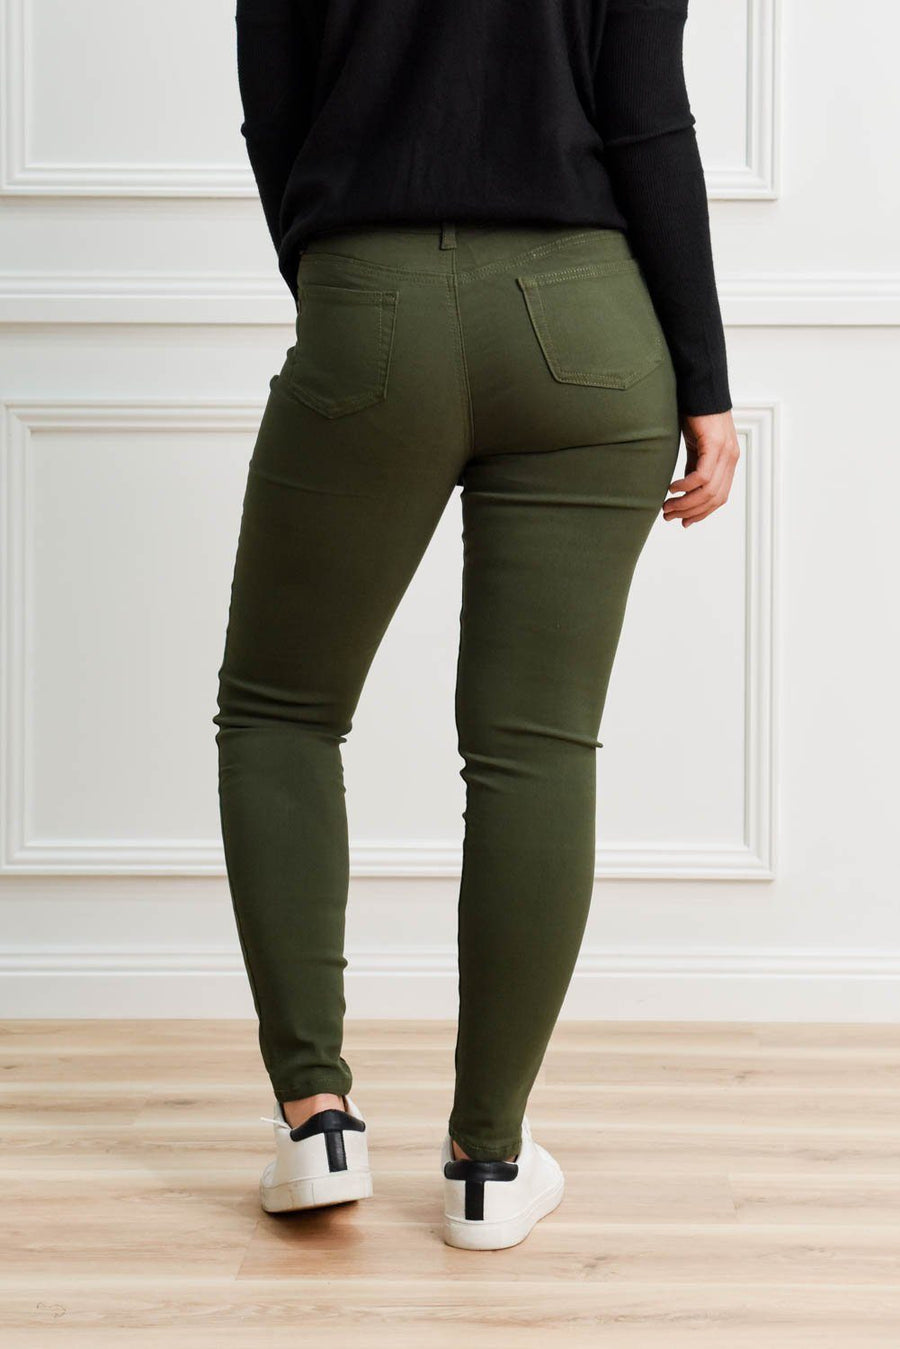 Kyla Stretch Jeans | Khaki Jeans Gray Label